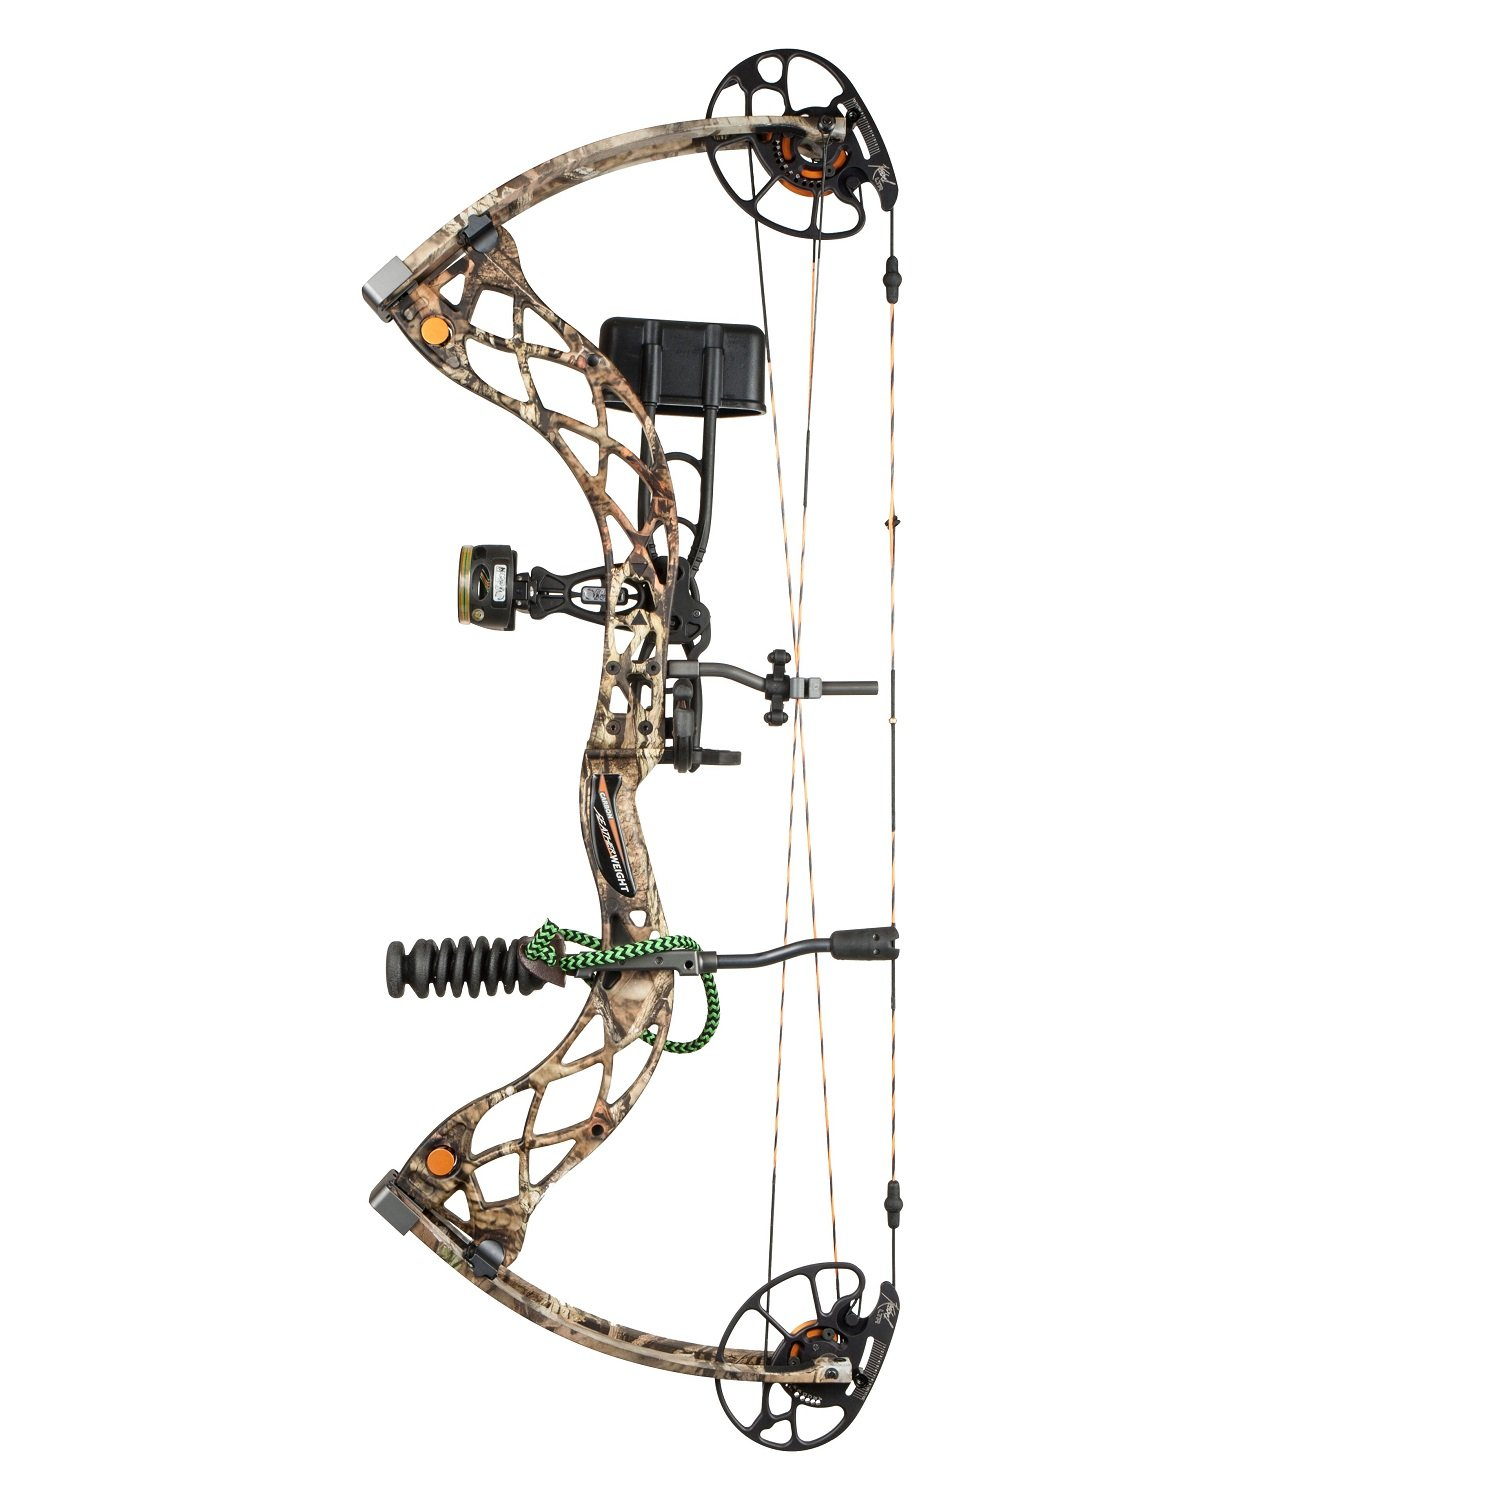 3. Martin Archery Carbon Bow Package with Kestrel Cams